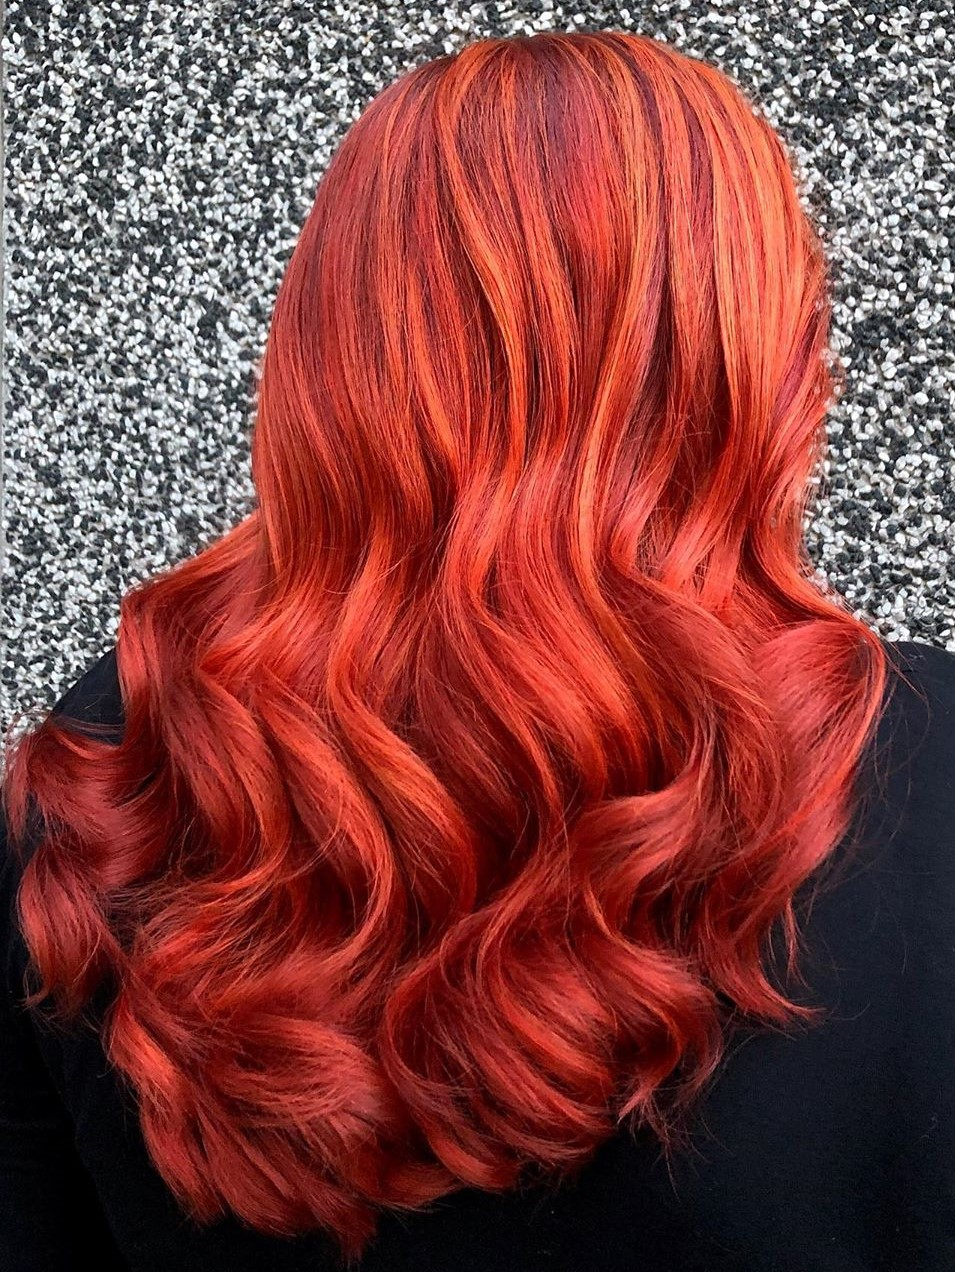 Bright Pink Red Hair with Highlights